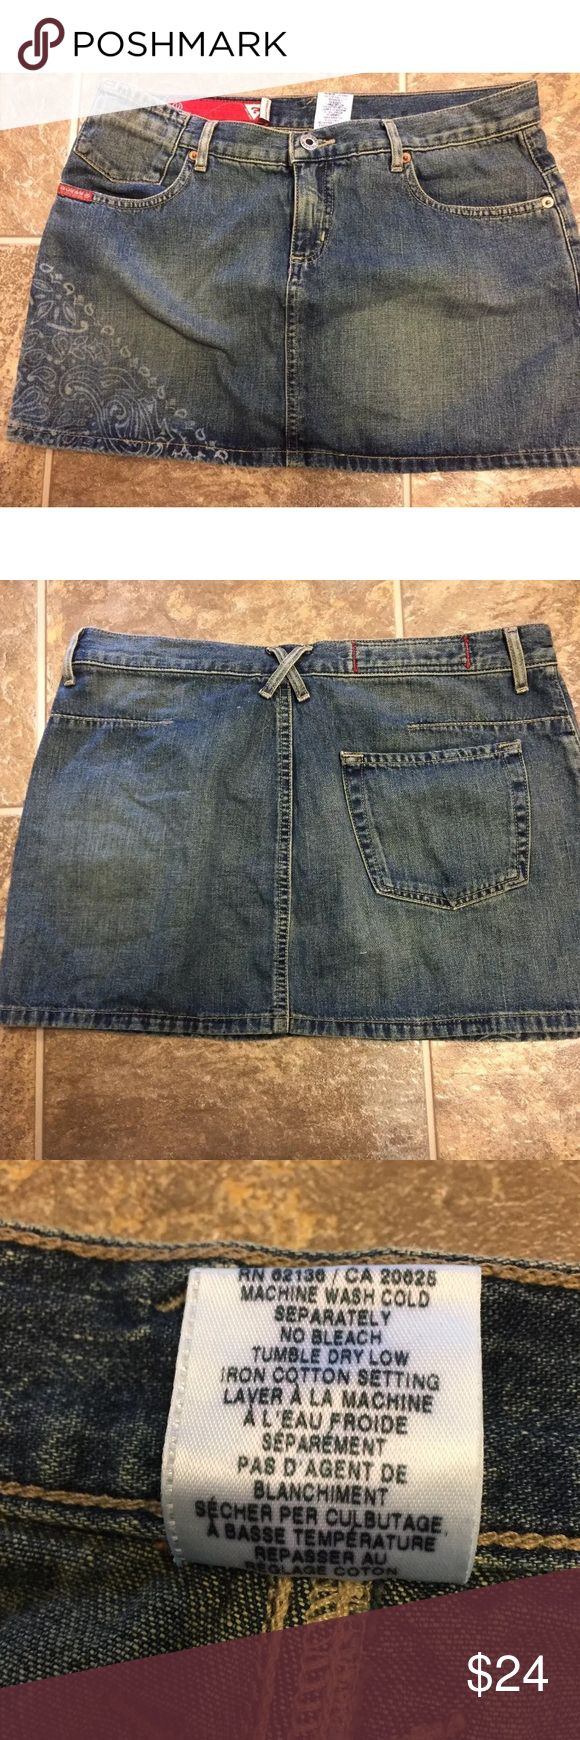 """Guess Jeans Printed Blue Jean Denim Mini Skirt 29 Guess Jeans Women's Sz 29 Dark Wash Denim Jean Mini Skirt Printed on the side as pictured  Front zip closure  Pockets  Waist 32"""" Length 12"""" 100% Cotton  Made in Mexico  Good Preowned Condition Non Smoking Home Guess Skirts Mini"""